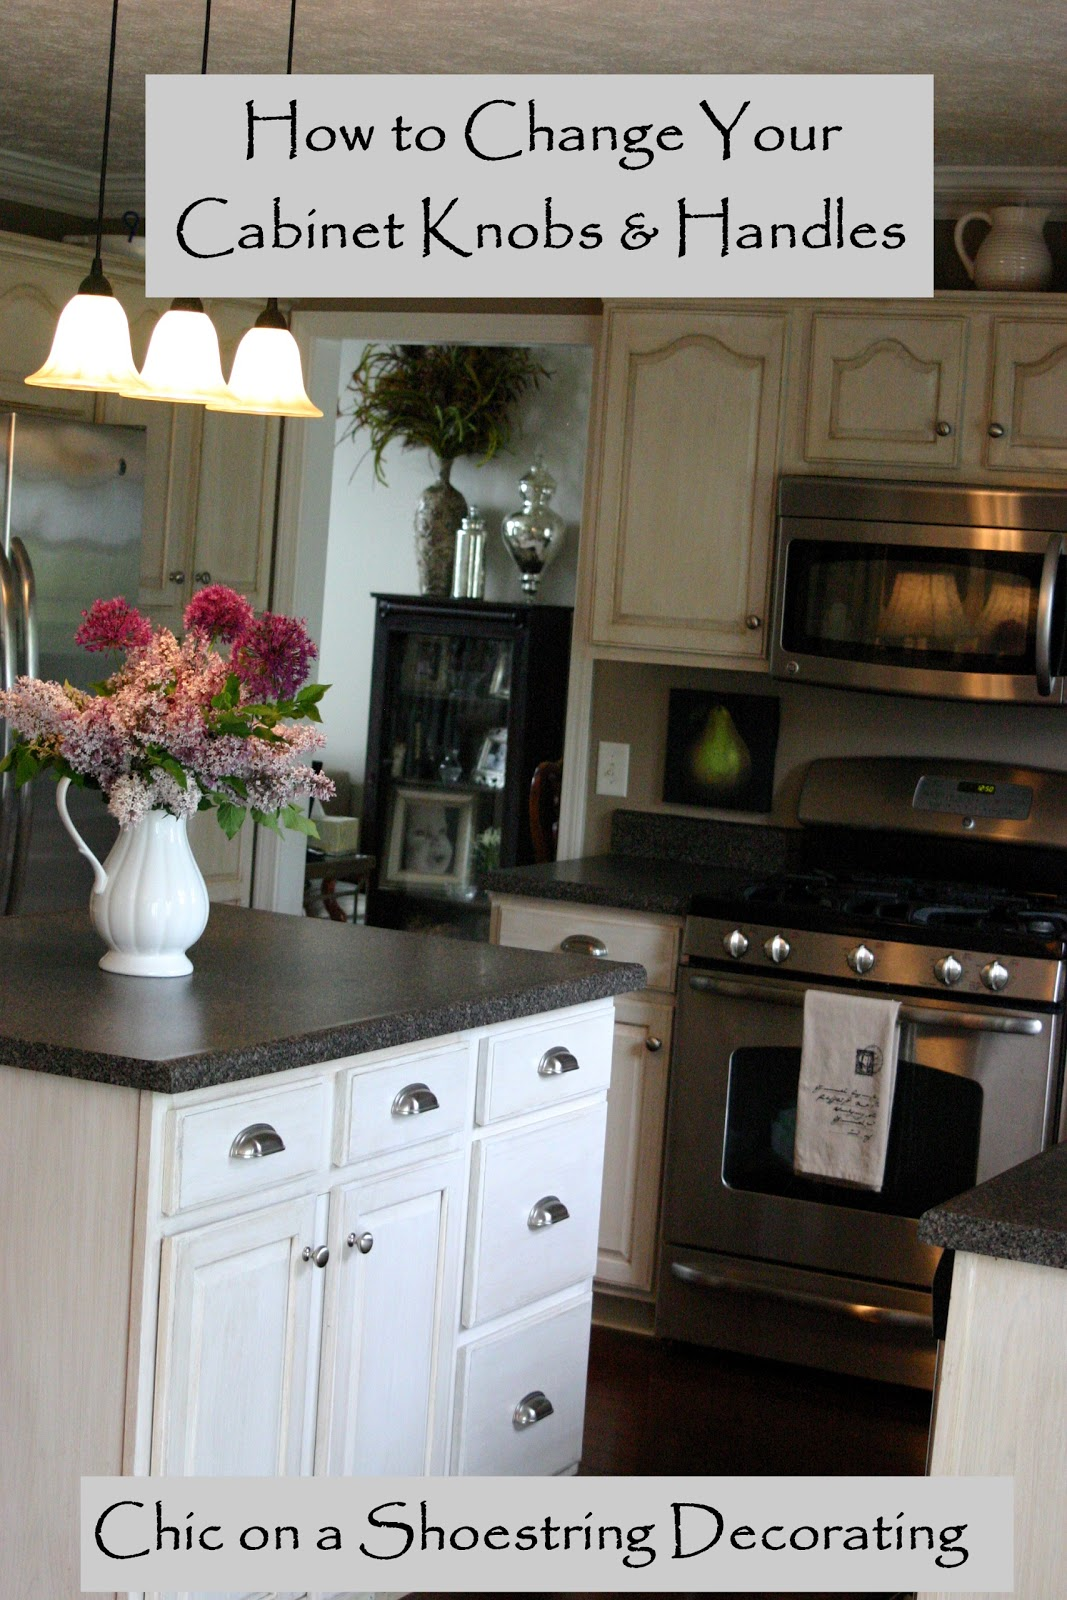 Can You Just Replace Kitchen Cabinet Doors Chic On A Shoestring Decorating How To Change Your